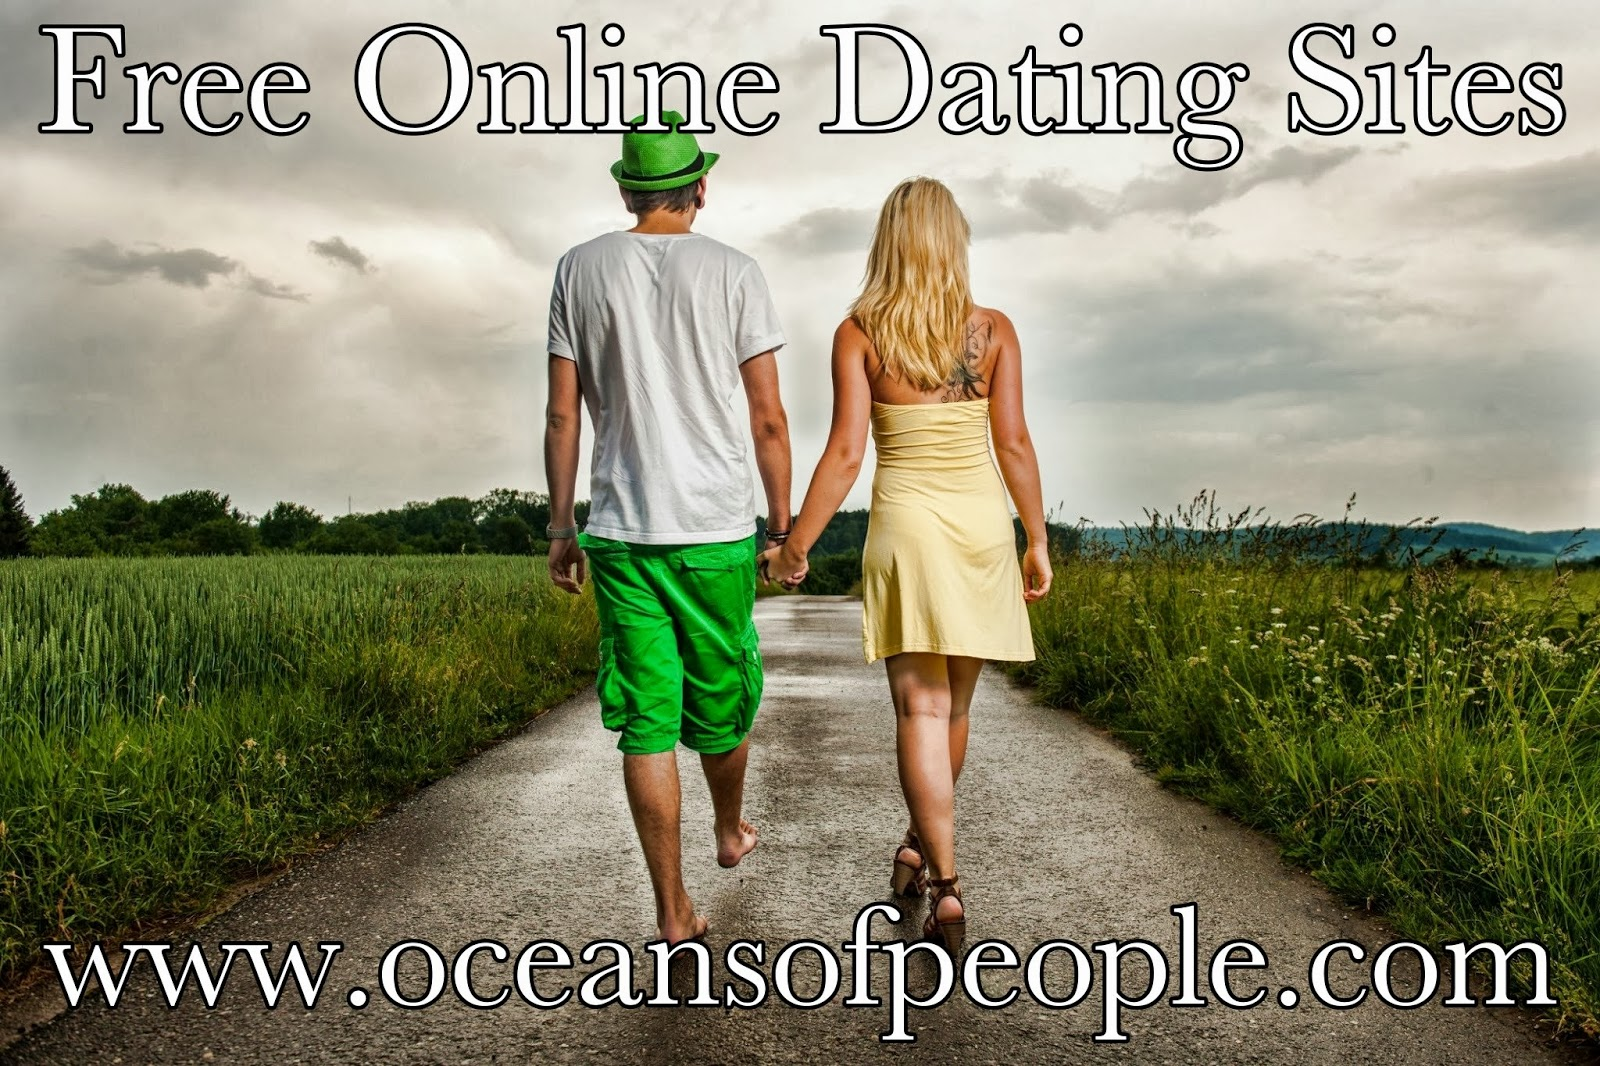 Free singles dating sites online